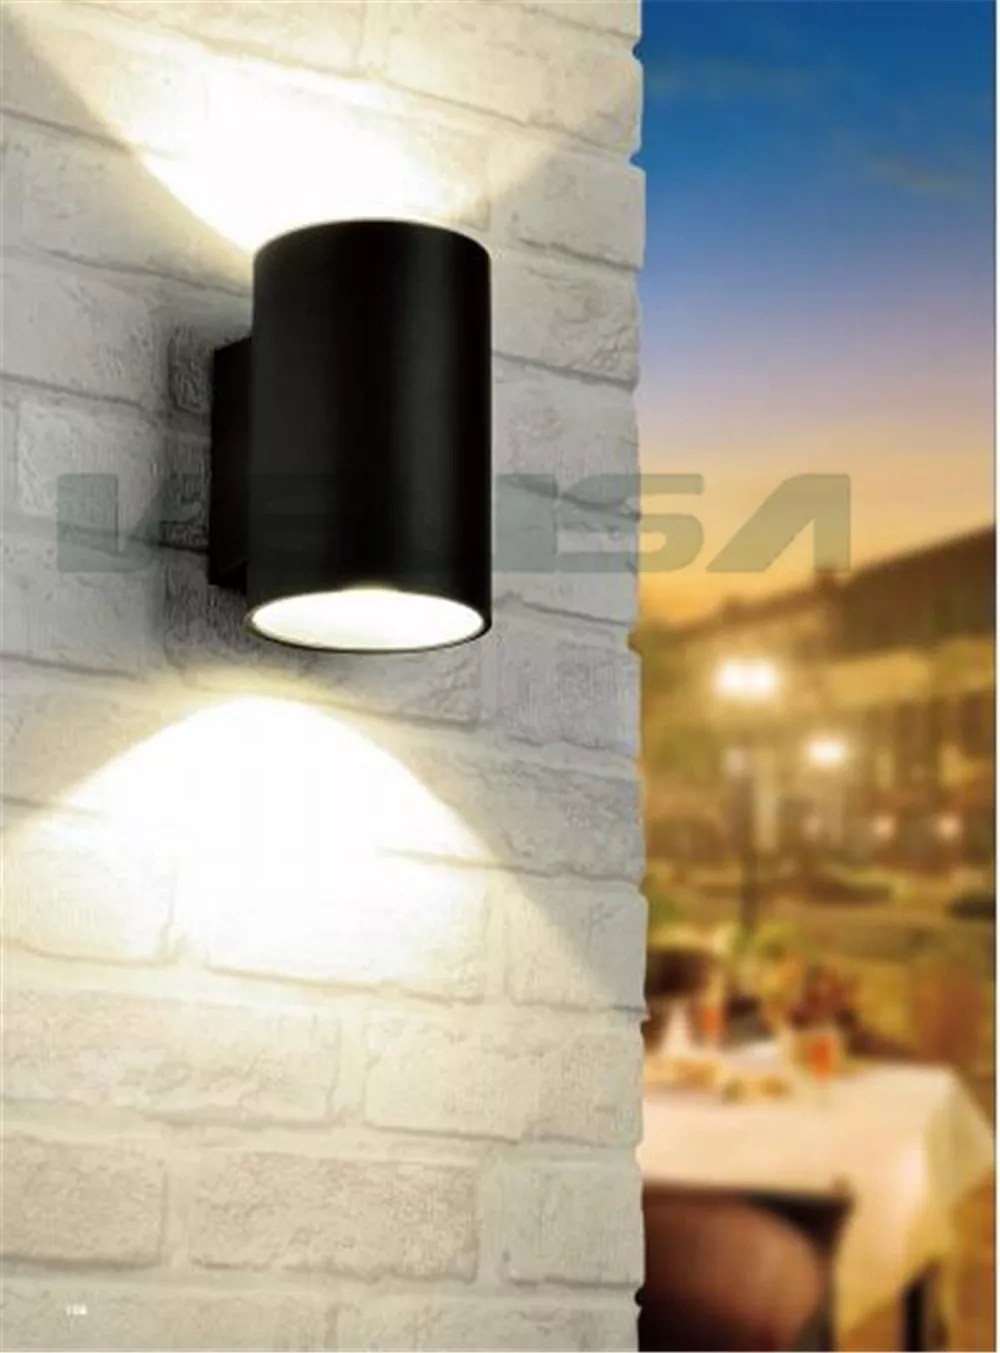 Applique Murale Exterieur Led Élégant Haute Puissance Extérieur Haut Et Bas Applique Murale Applique Murale Ip65 Extérieur Led De Paquet De Mur Buy Applique Murale